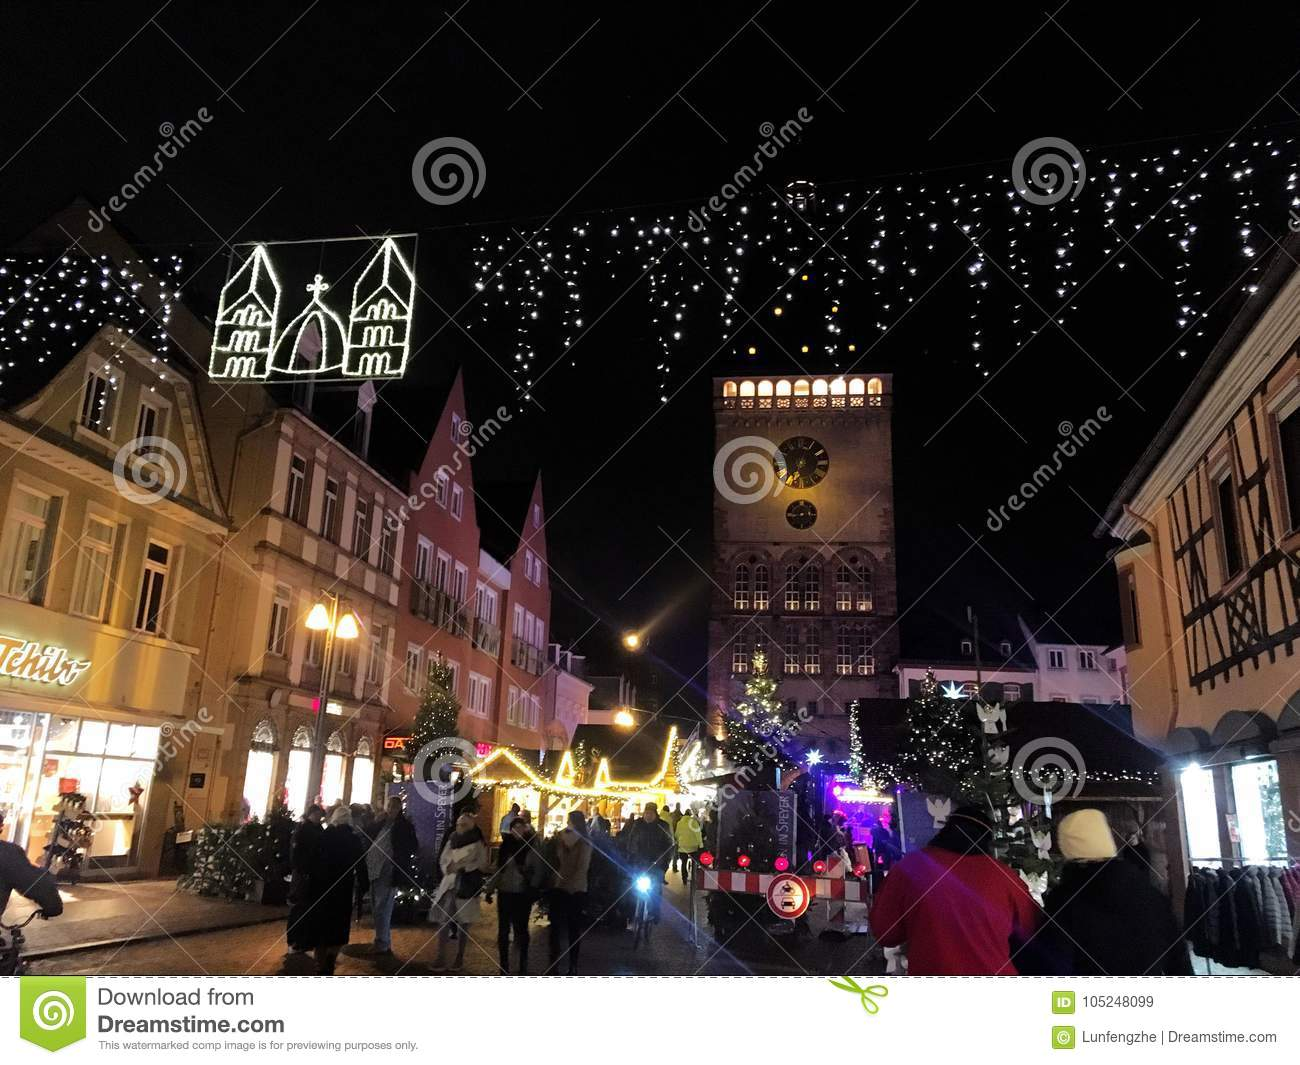 speyer germany 2017 december 1st christmas market at speyer cathedral by night - How Does Germany Celebrate Christmas